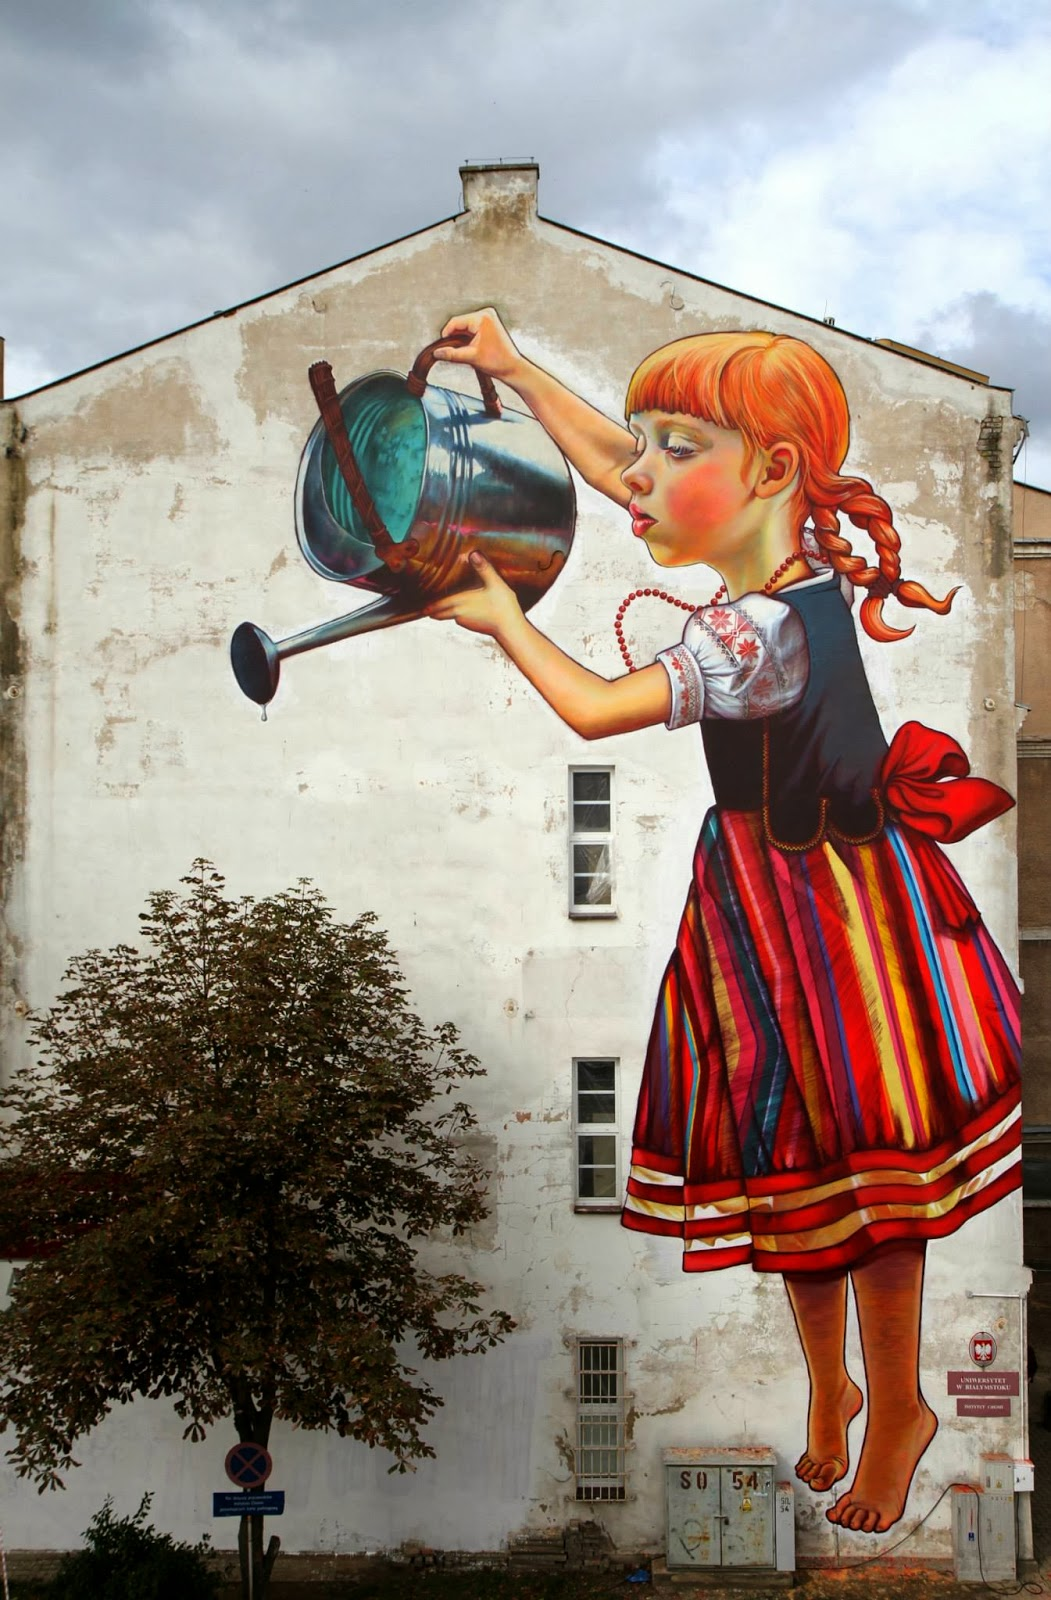 Natalia rak new mural for folk on the street bia ystok for Mural 7 de setembro